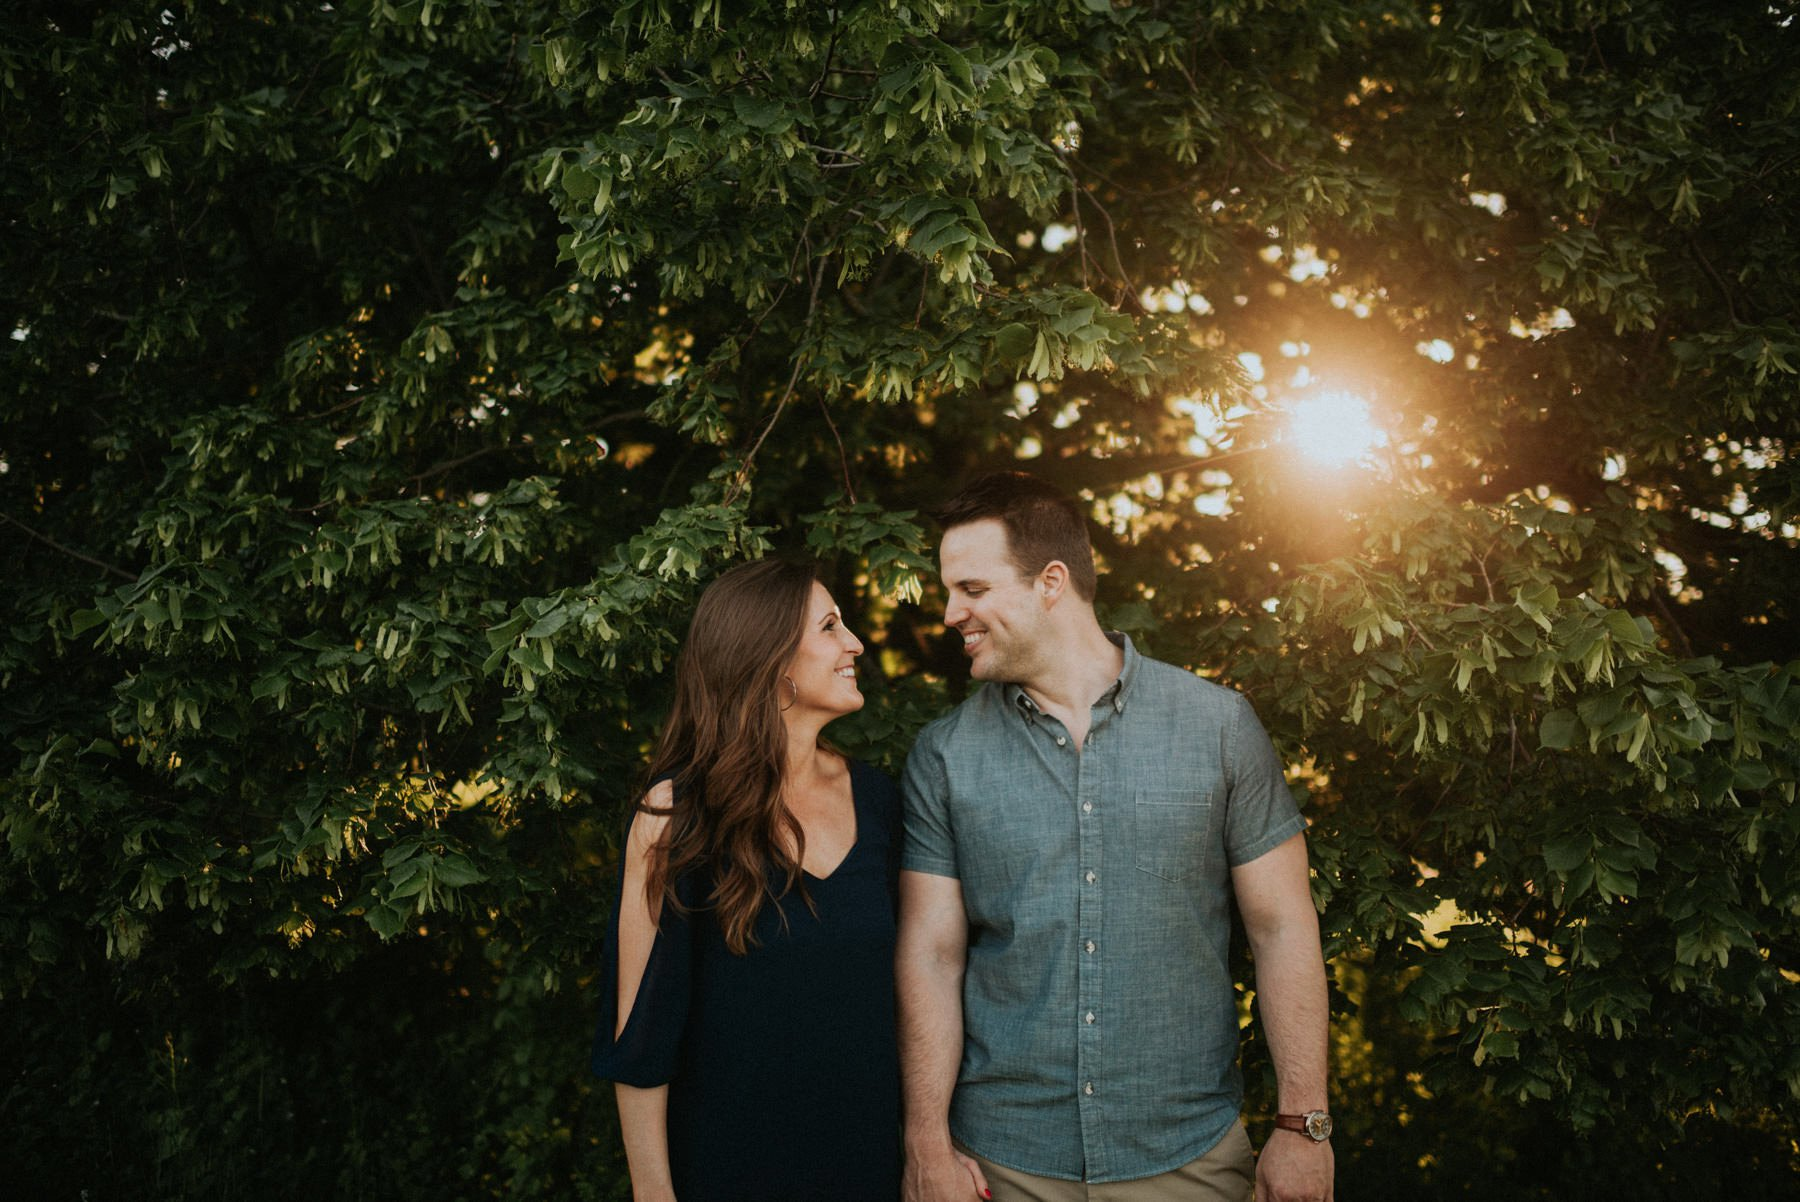 Newtown-square-engagement-session-22.jpg